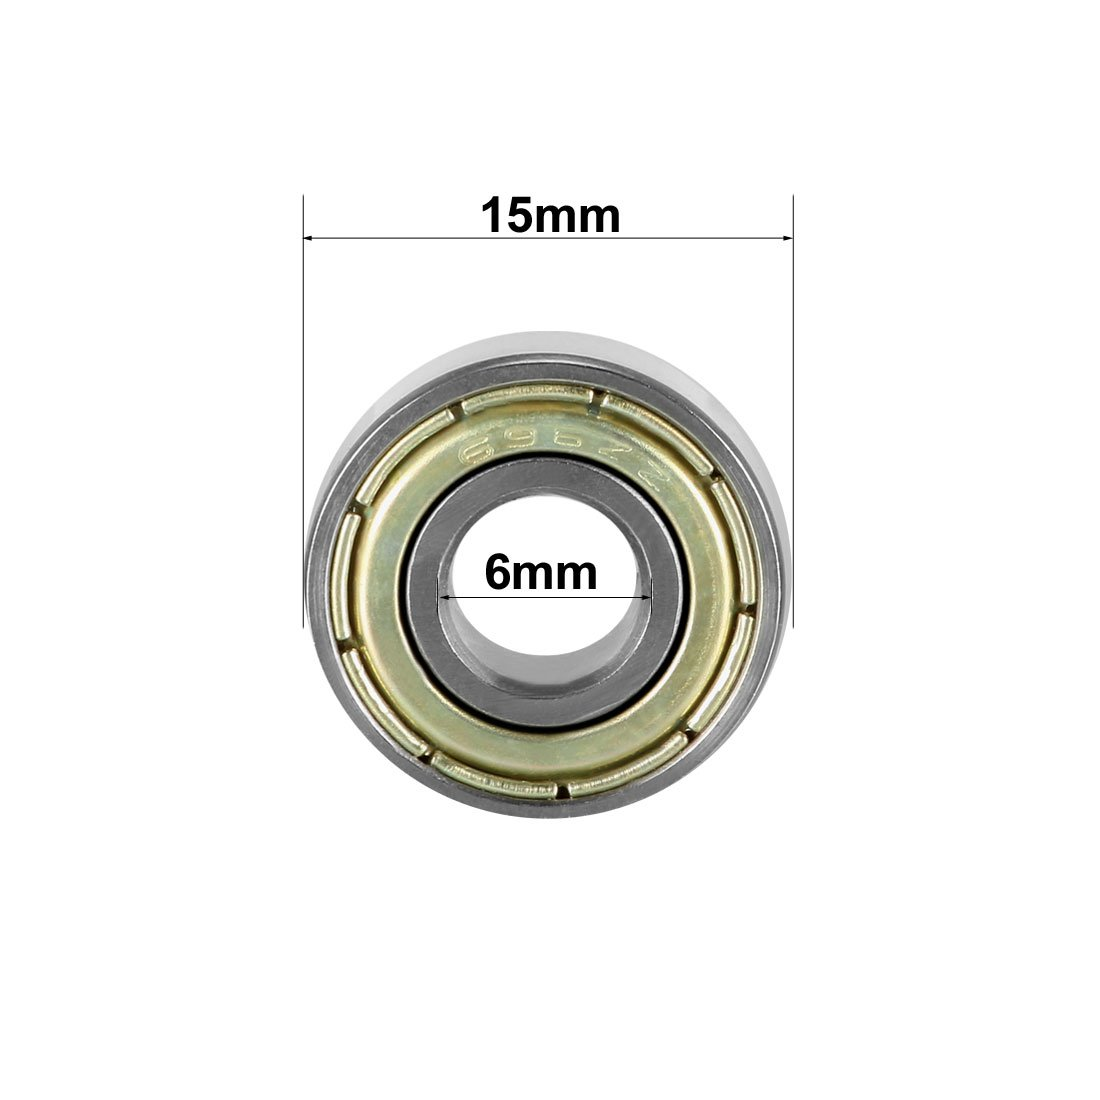 Pack of 4 3mm x 8mm x 4mm Carbon Steel Bearings sourcing map 693ZZ Deep Groove Ball Bearing Double Shield 693-2Z 2080093